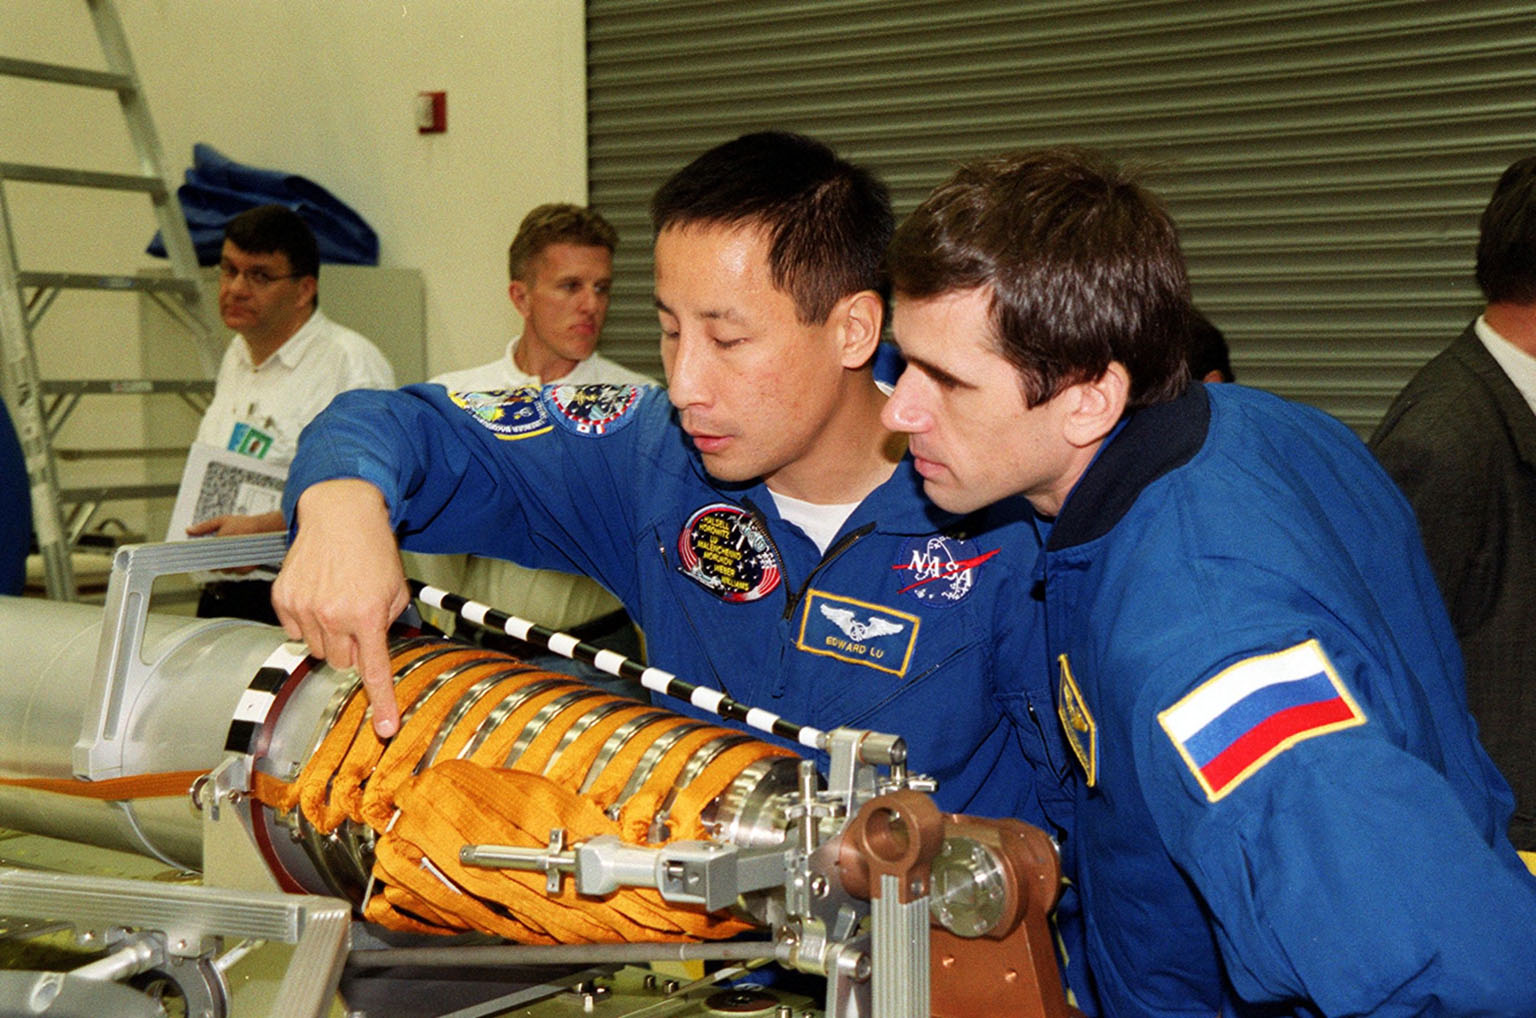 KENNEDY SPACE CENTER, FLA. -- During a Crew Equipment Interface Test (CEIT) at SPACEHAB, in Cape Canaveral, Fla., STS-101 crew members Edward Tsang Lu (Ph.D.) and Yuri Malenchenko, who is with the Russian Space Agency (RSA) check out part of the Russian crane Strela. Other crew members are Commander James Donald Halsell Jr., Pilot Scott Horowitz, and Mission Specialists Jeffrey N. Williams, Mary Ellen Weber, (Ph.D.) and Boris W. Morukov, also with RSA. The primary objective of the STS-101 mission is to complete the initial outfitting of the International Space Station, making it fully ready for the first long-term crew. The seven-member crew will transfer almost two tons of equipment and supplies from SPACEHAB's Logistics Double Module. Additionally, they will unpack a shipment of supplies delivered earlier by a Russian Progress space tug and begin outfitting the newly arrived Zvezda Service Module. Three astronauts will perform two space walks to transfer and install parts of the Russian Strela cargo boom that are attached to SPACEHAB's Integrated Cargo Container, connect utility cables between Zarya and Zvezda, and install a magnetometer/pole assembly on the Service Module. Additional activities for the STS-101 astronauts include working with the Space Experiment Module (SEM-06) and the Mission to America's Remarkable Schools (MARS), two educational initiatives. STS-101 is scheduled for launch no earlier than March 16, 2000